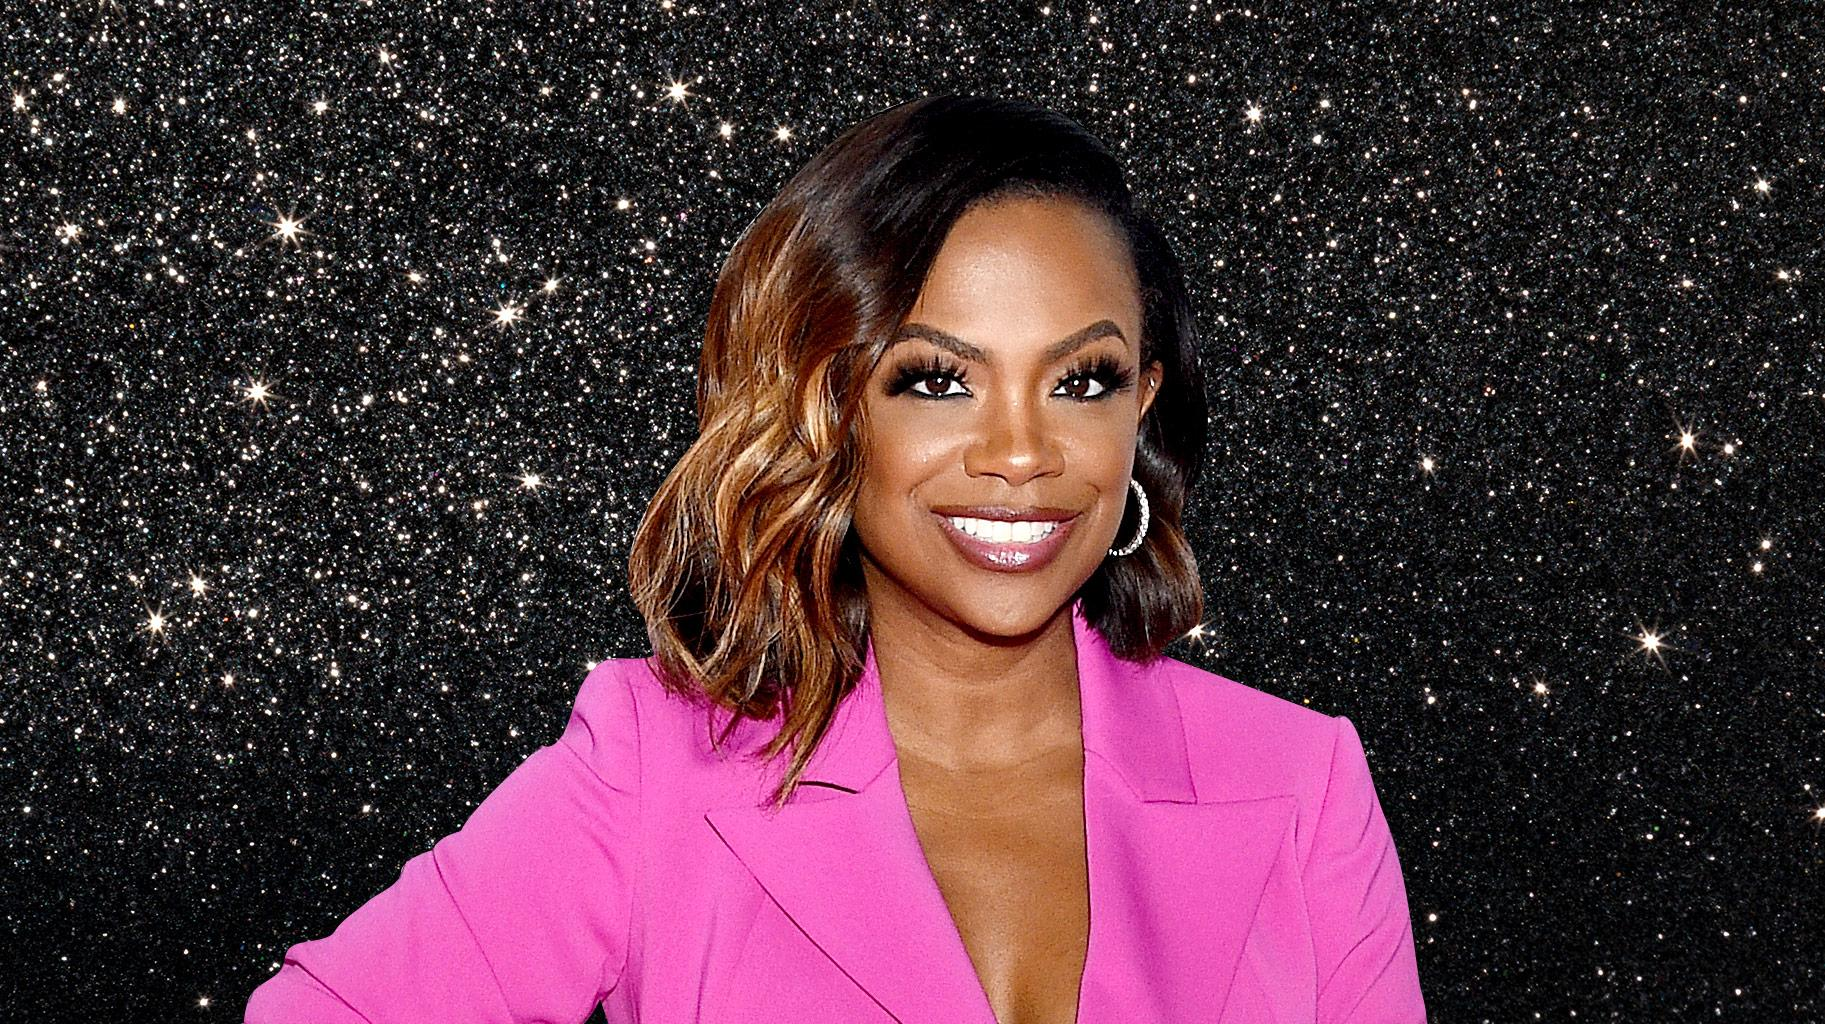 Kandi Burruss Gets Back To Work On This 'Money Making Monday' - See Her Latest Photo